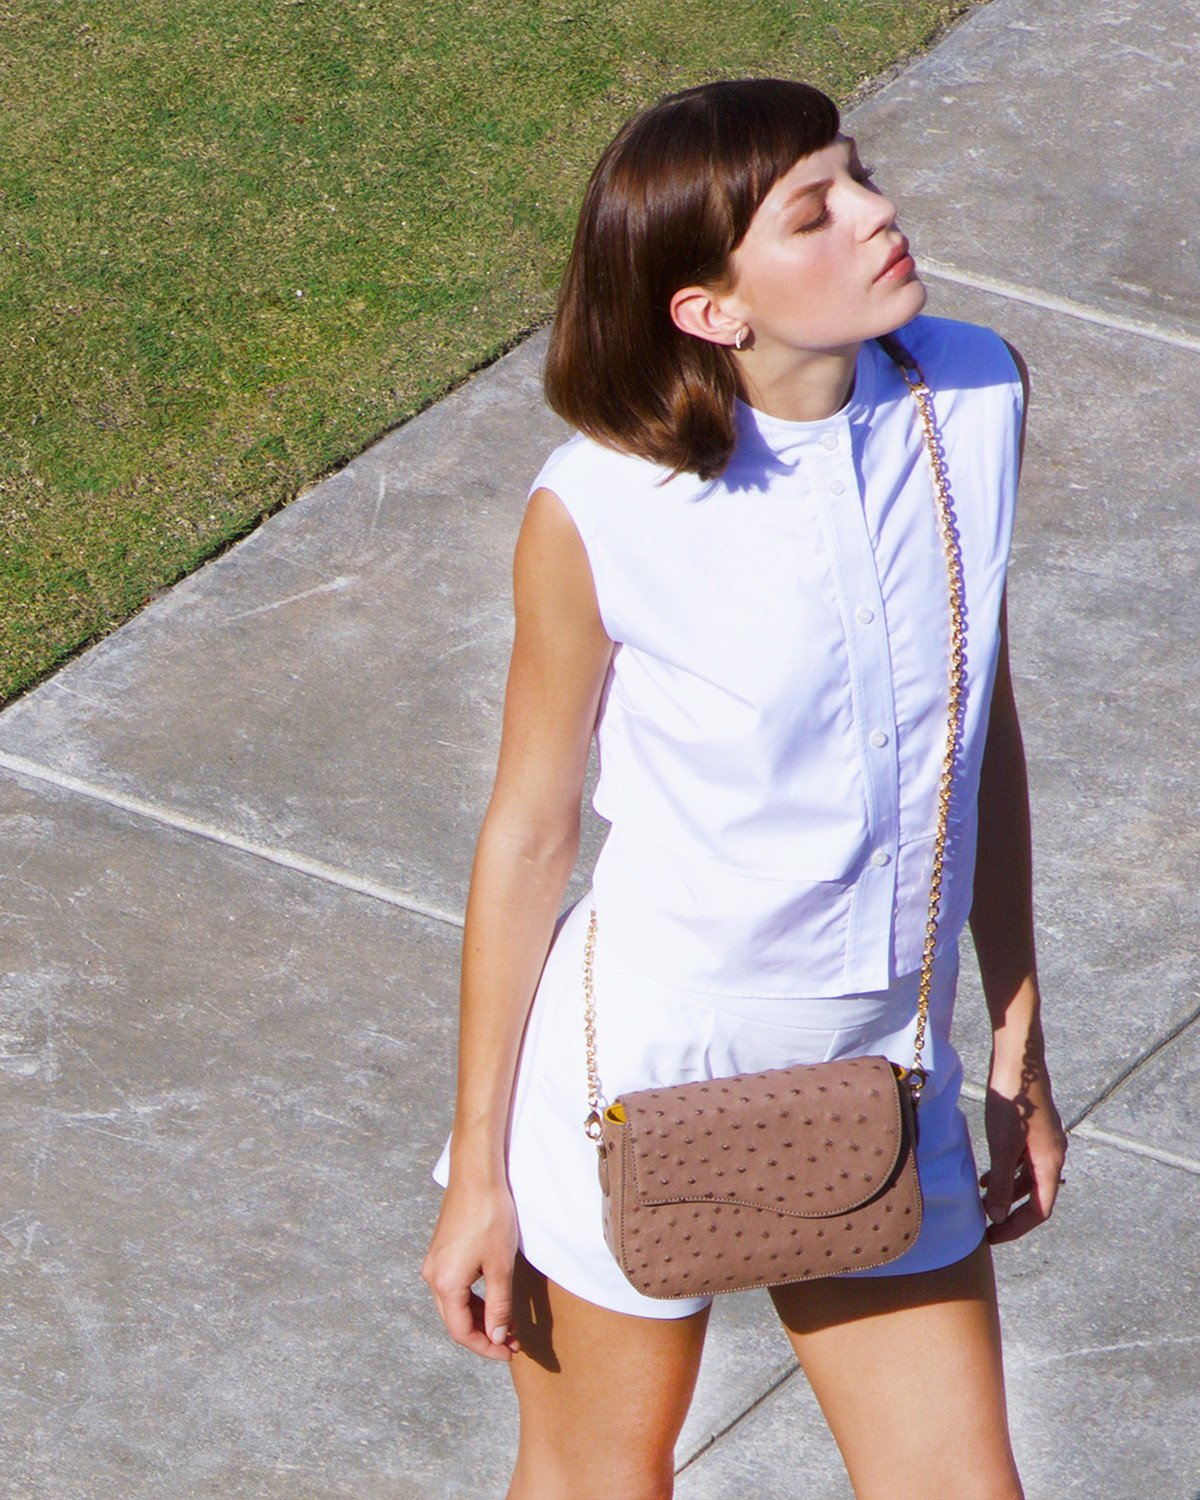 Model wearing Crossbody The YB Edgar Ostrich Bag in Light Brown Ostrich Miami